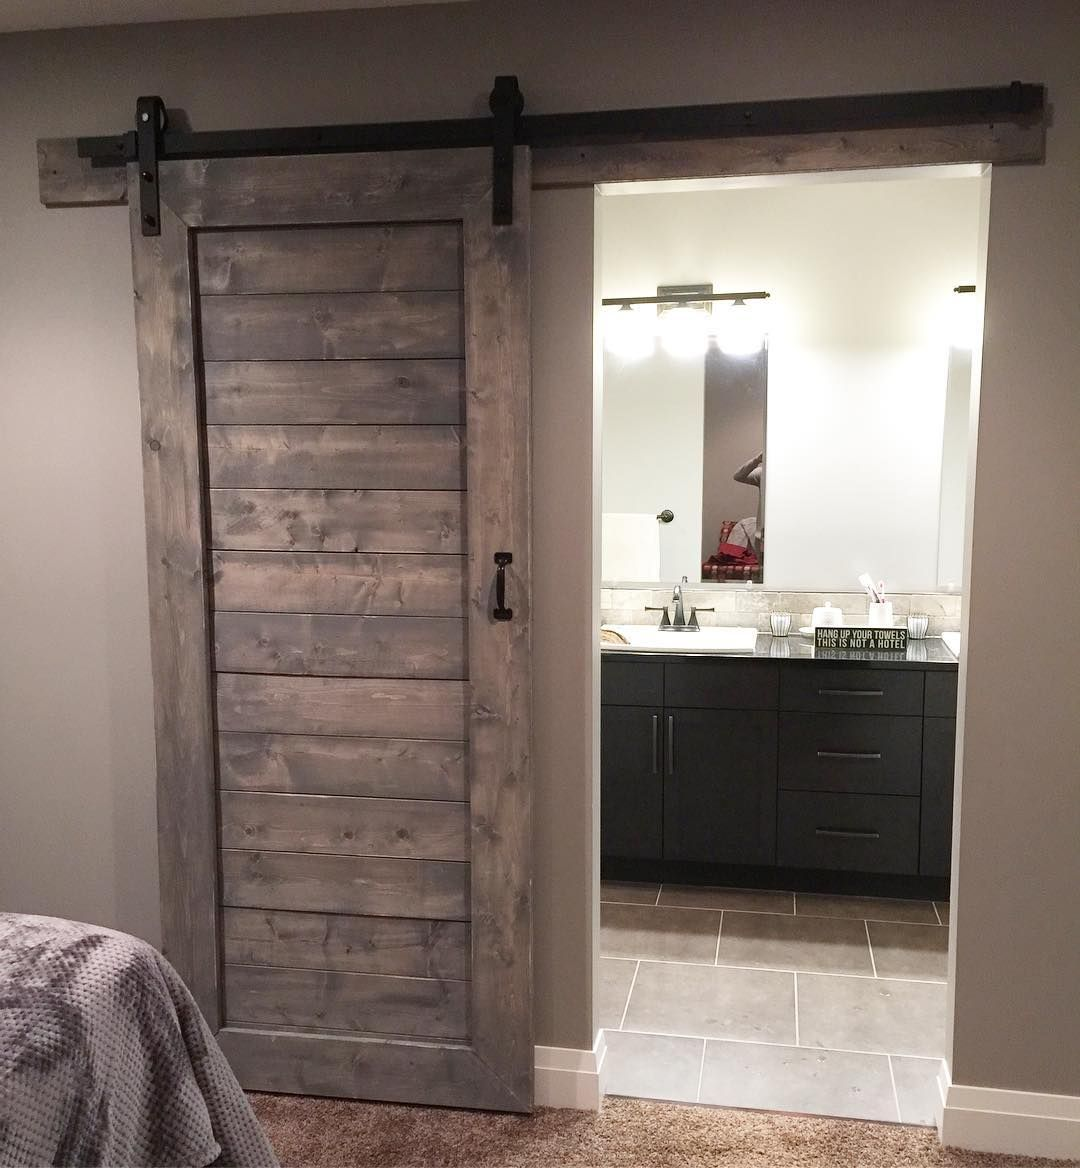 Sliding barn door design ideas for your home with mirror, window. Interior  and exterior sliding barn door for your bathroom, bedroom, closet, living  room.